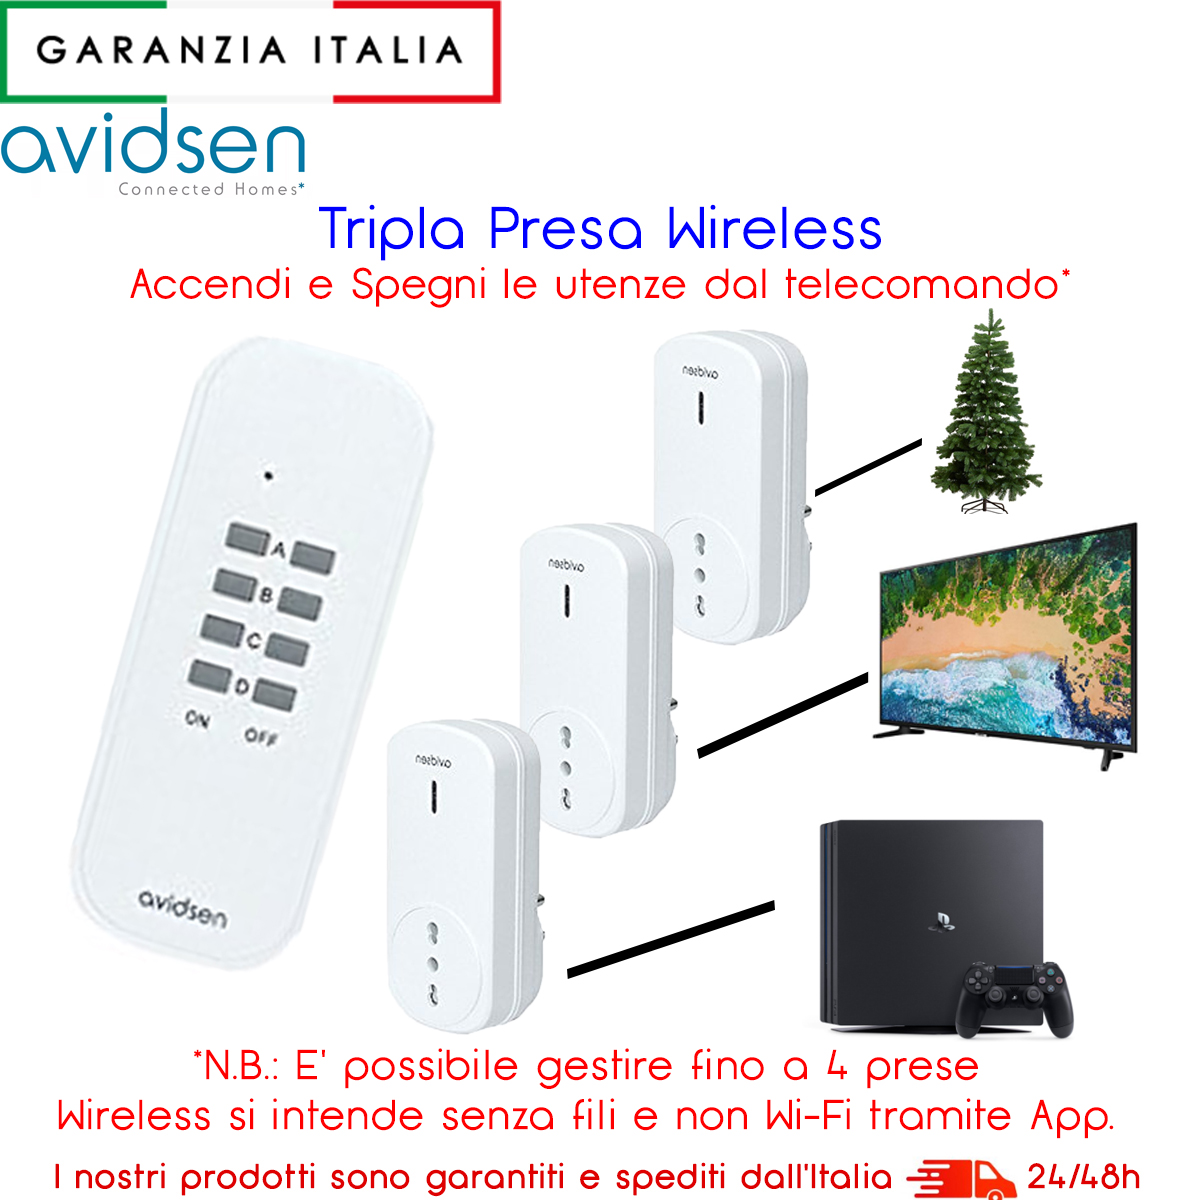 KIT 3 PRESE ELETTRICHE AZIONABILI A DISTANZA CON TELECOMANDO WIRELESS INCLUSO